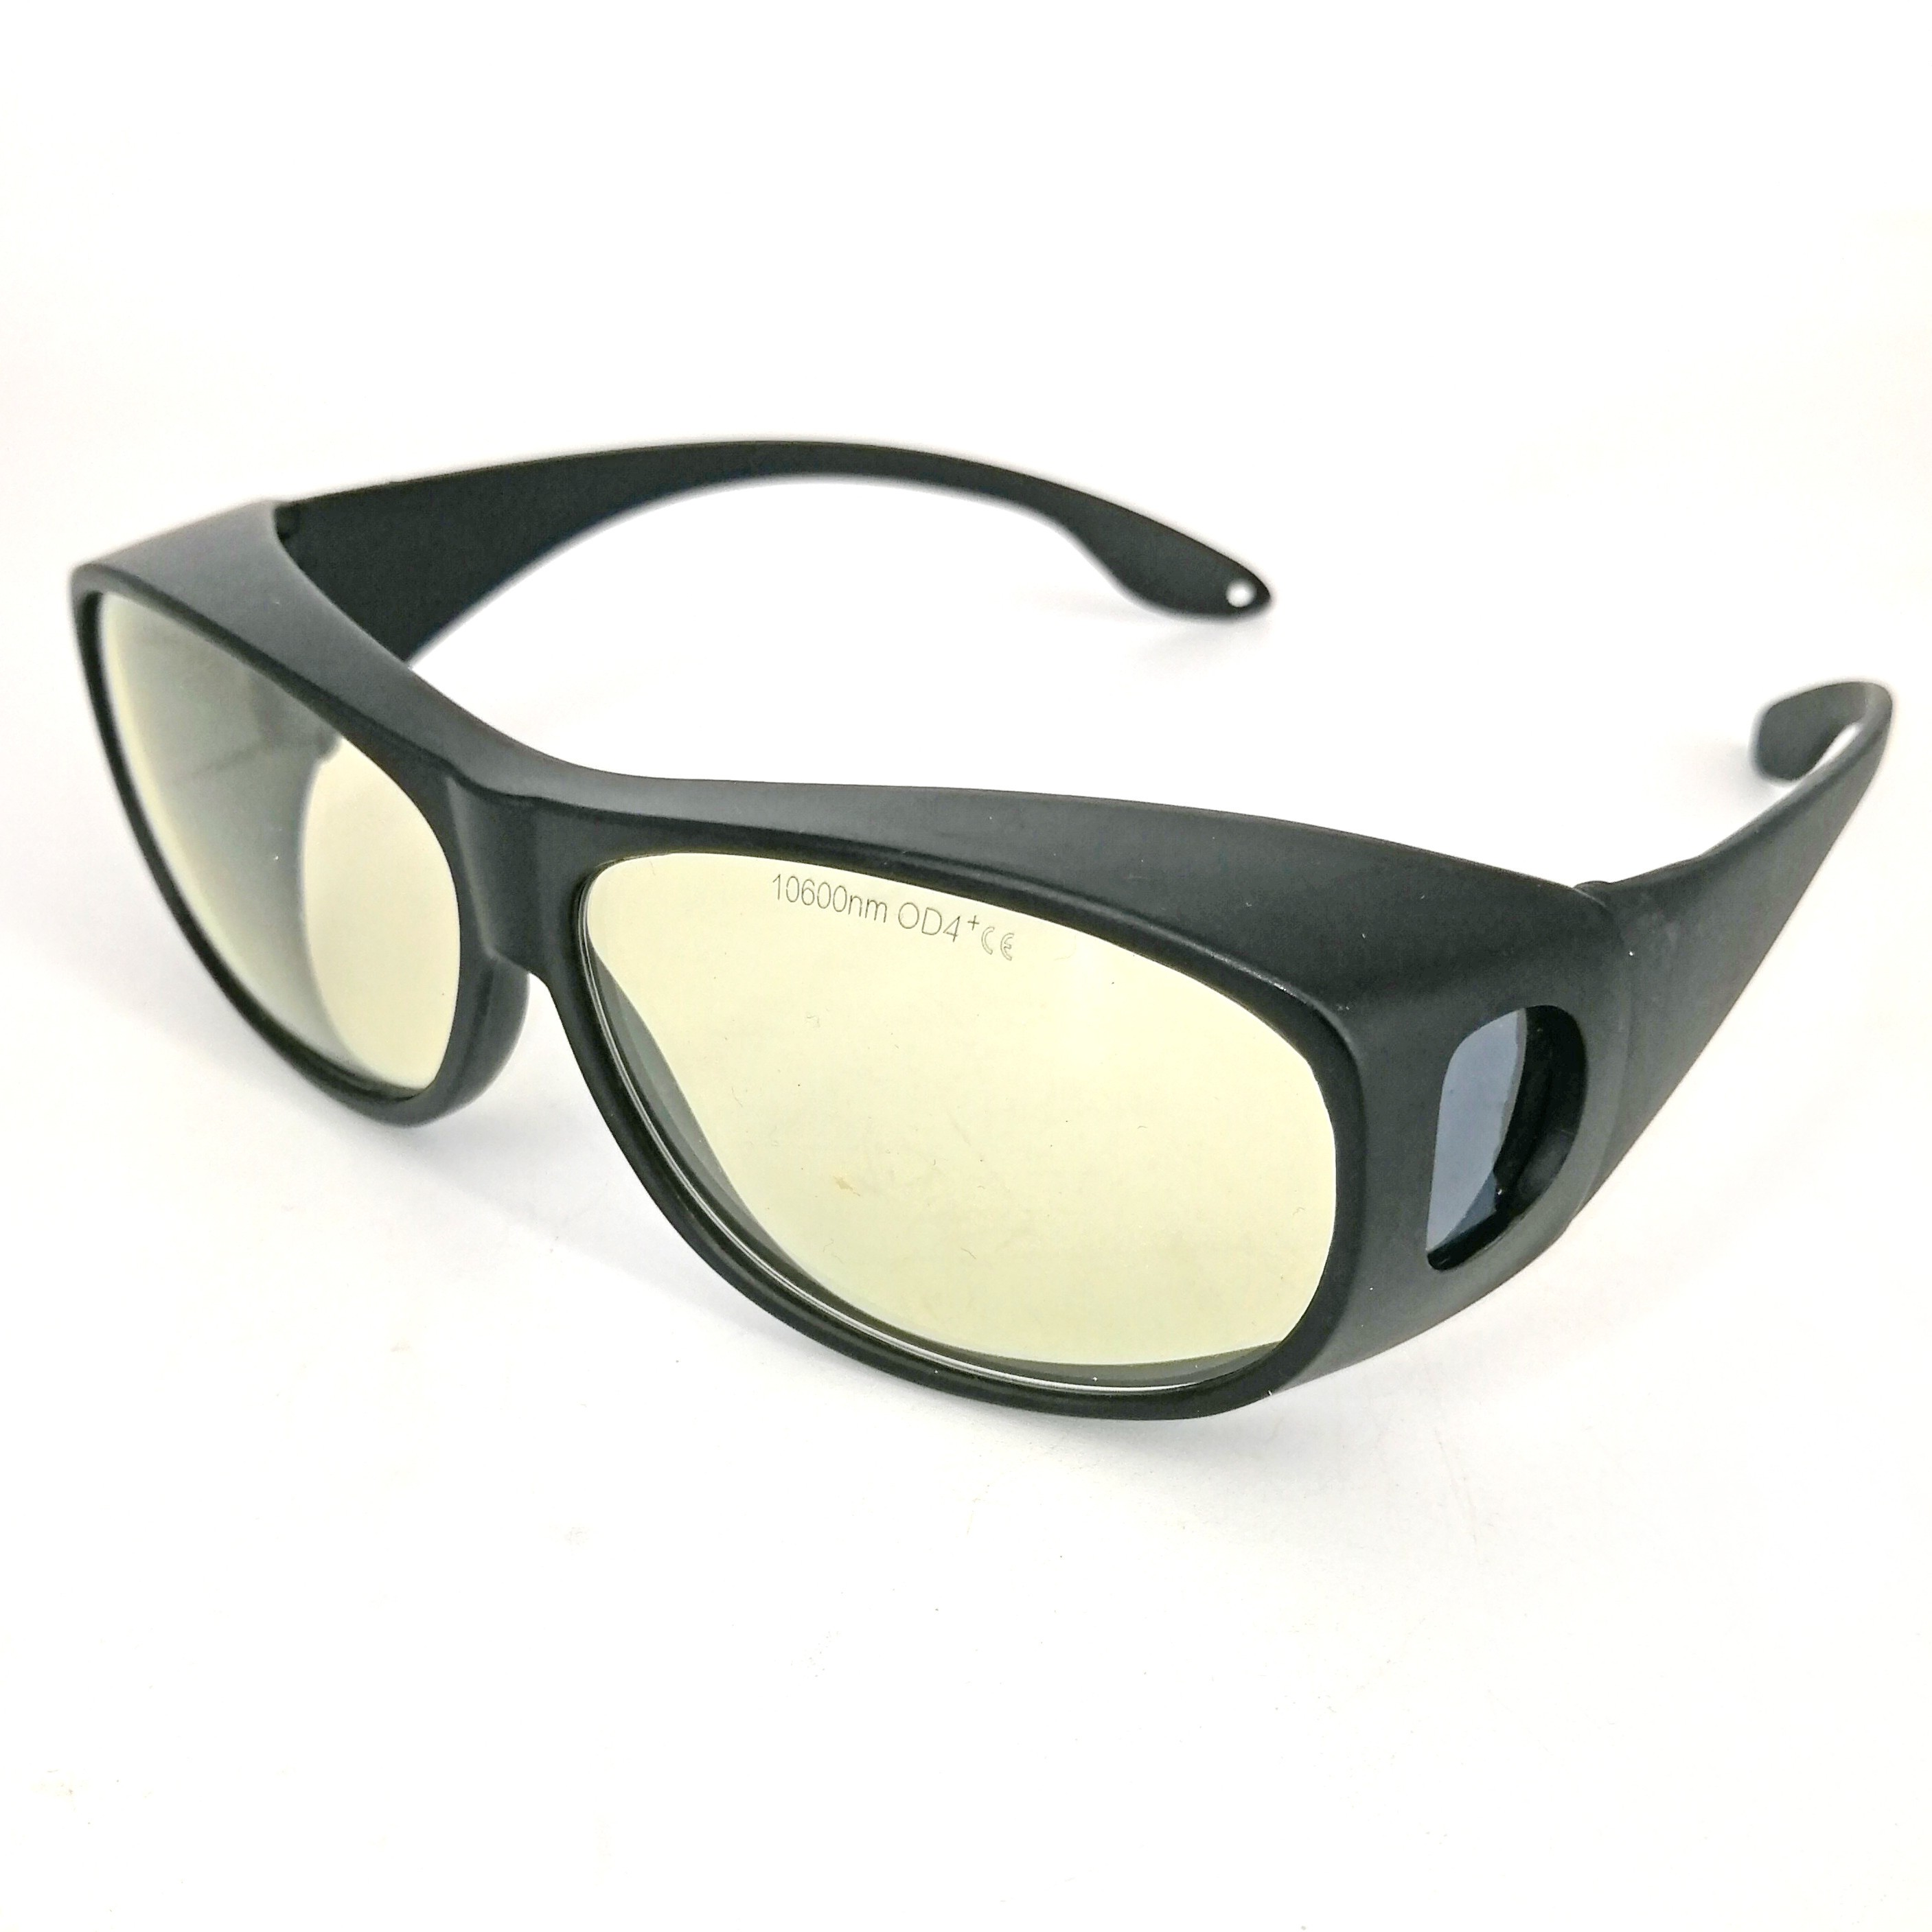 T-CO2 OD4+ 10600nm CO2 Marking Cutting Laser protective goggles